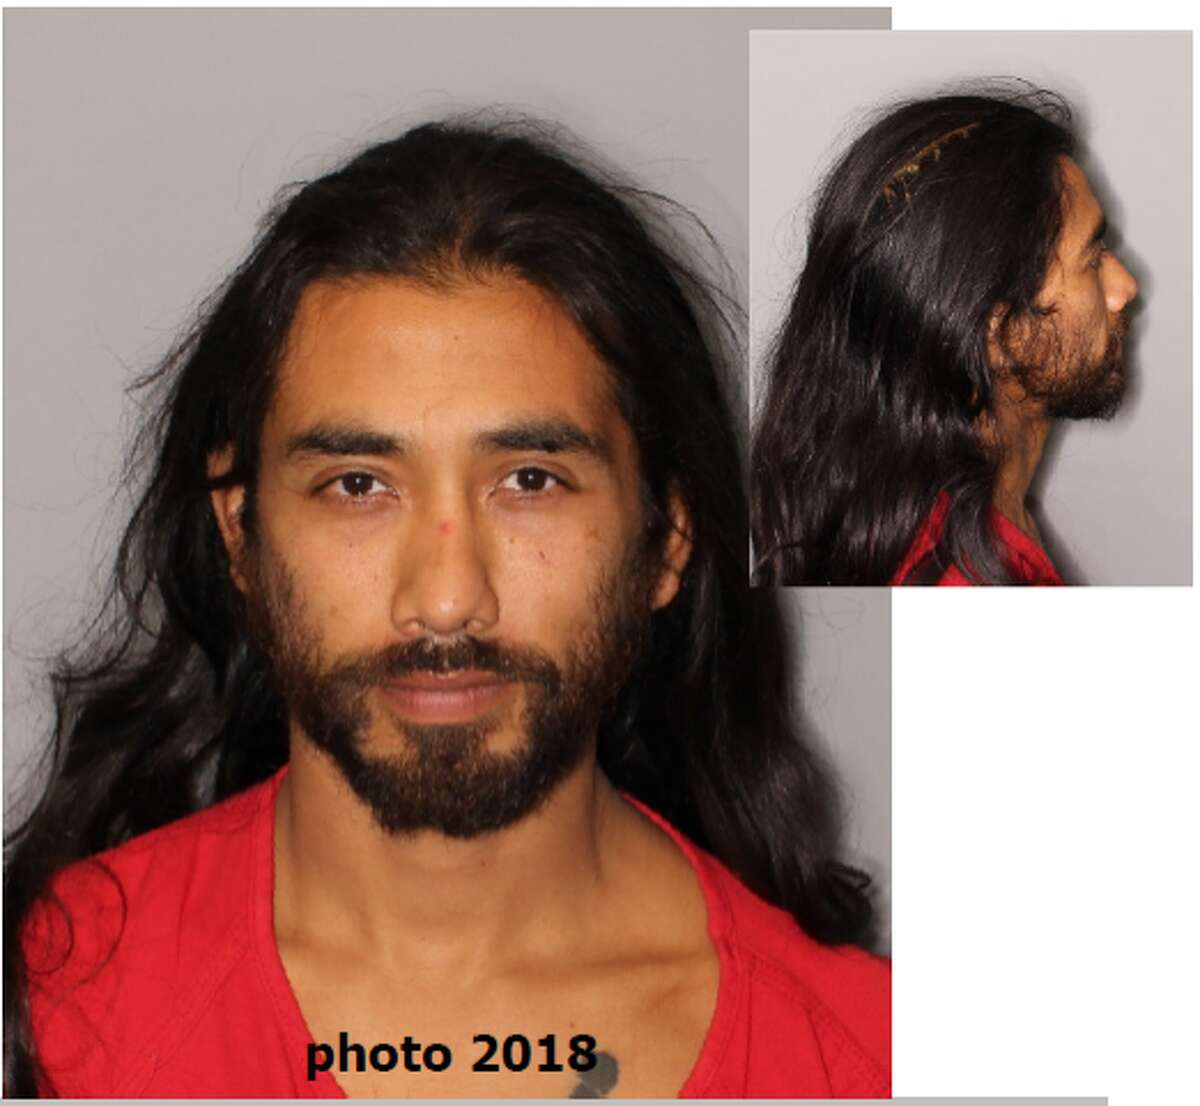 The King County Sheriff's Office issued a warrant for Francisco Carranza-Ramirez after he allegedly attacked a woman two days after he was released from jail for raping her last year.